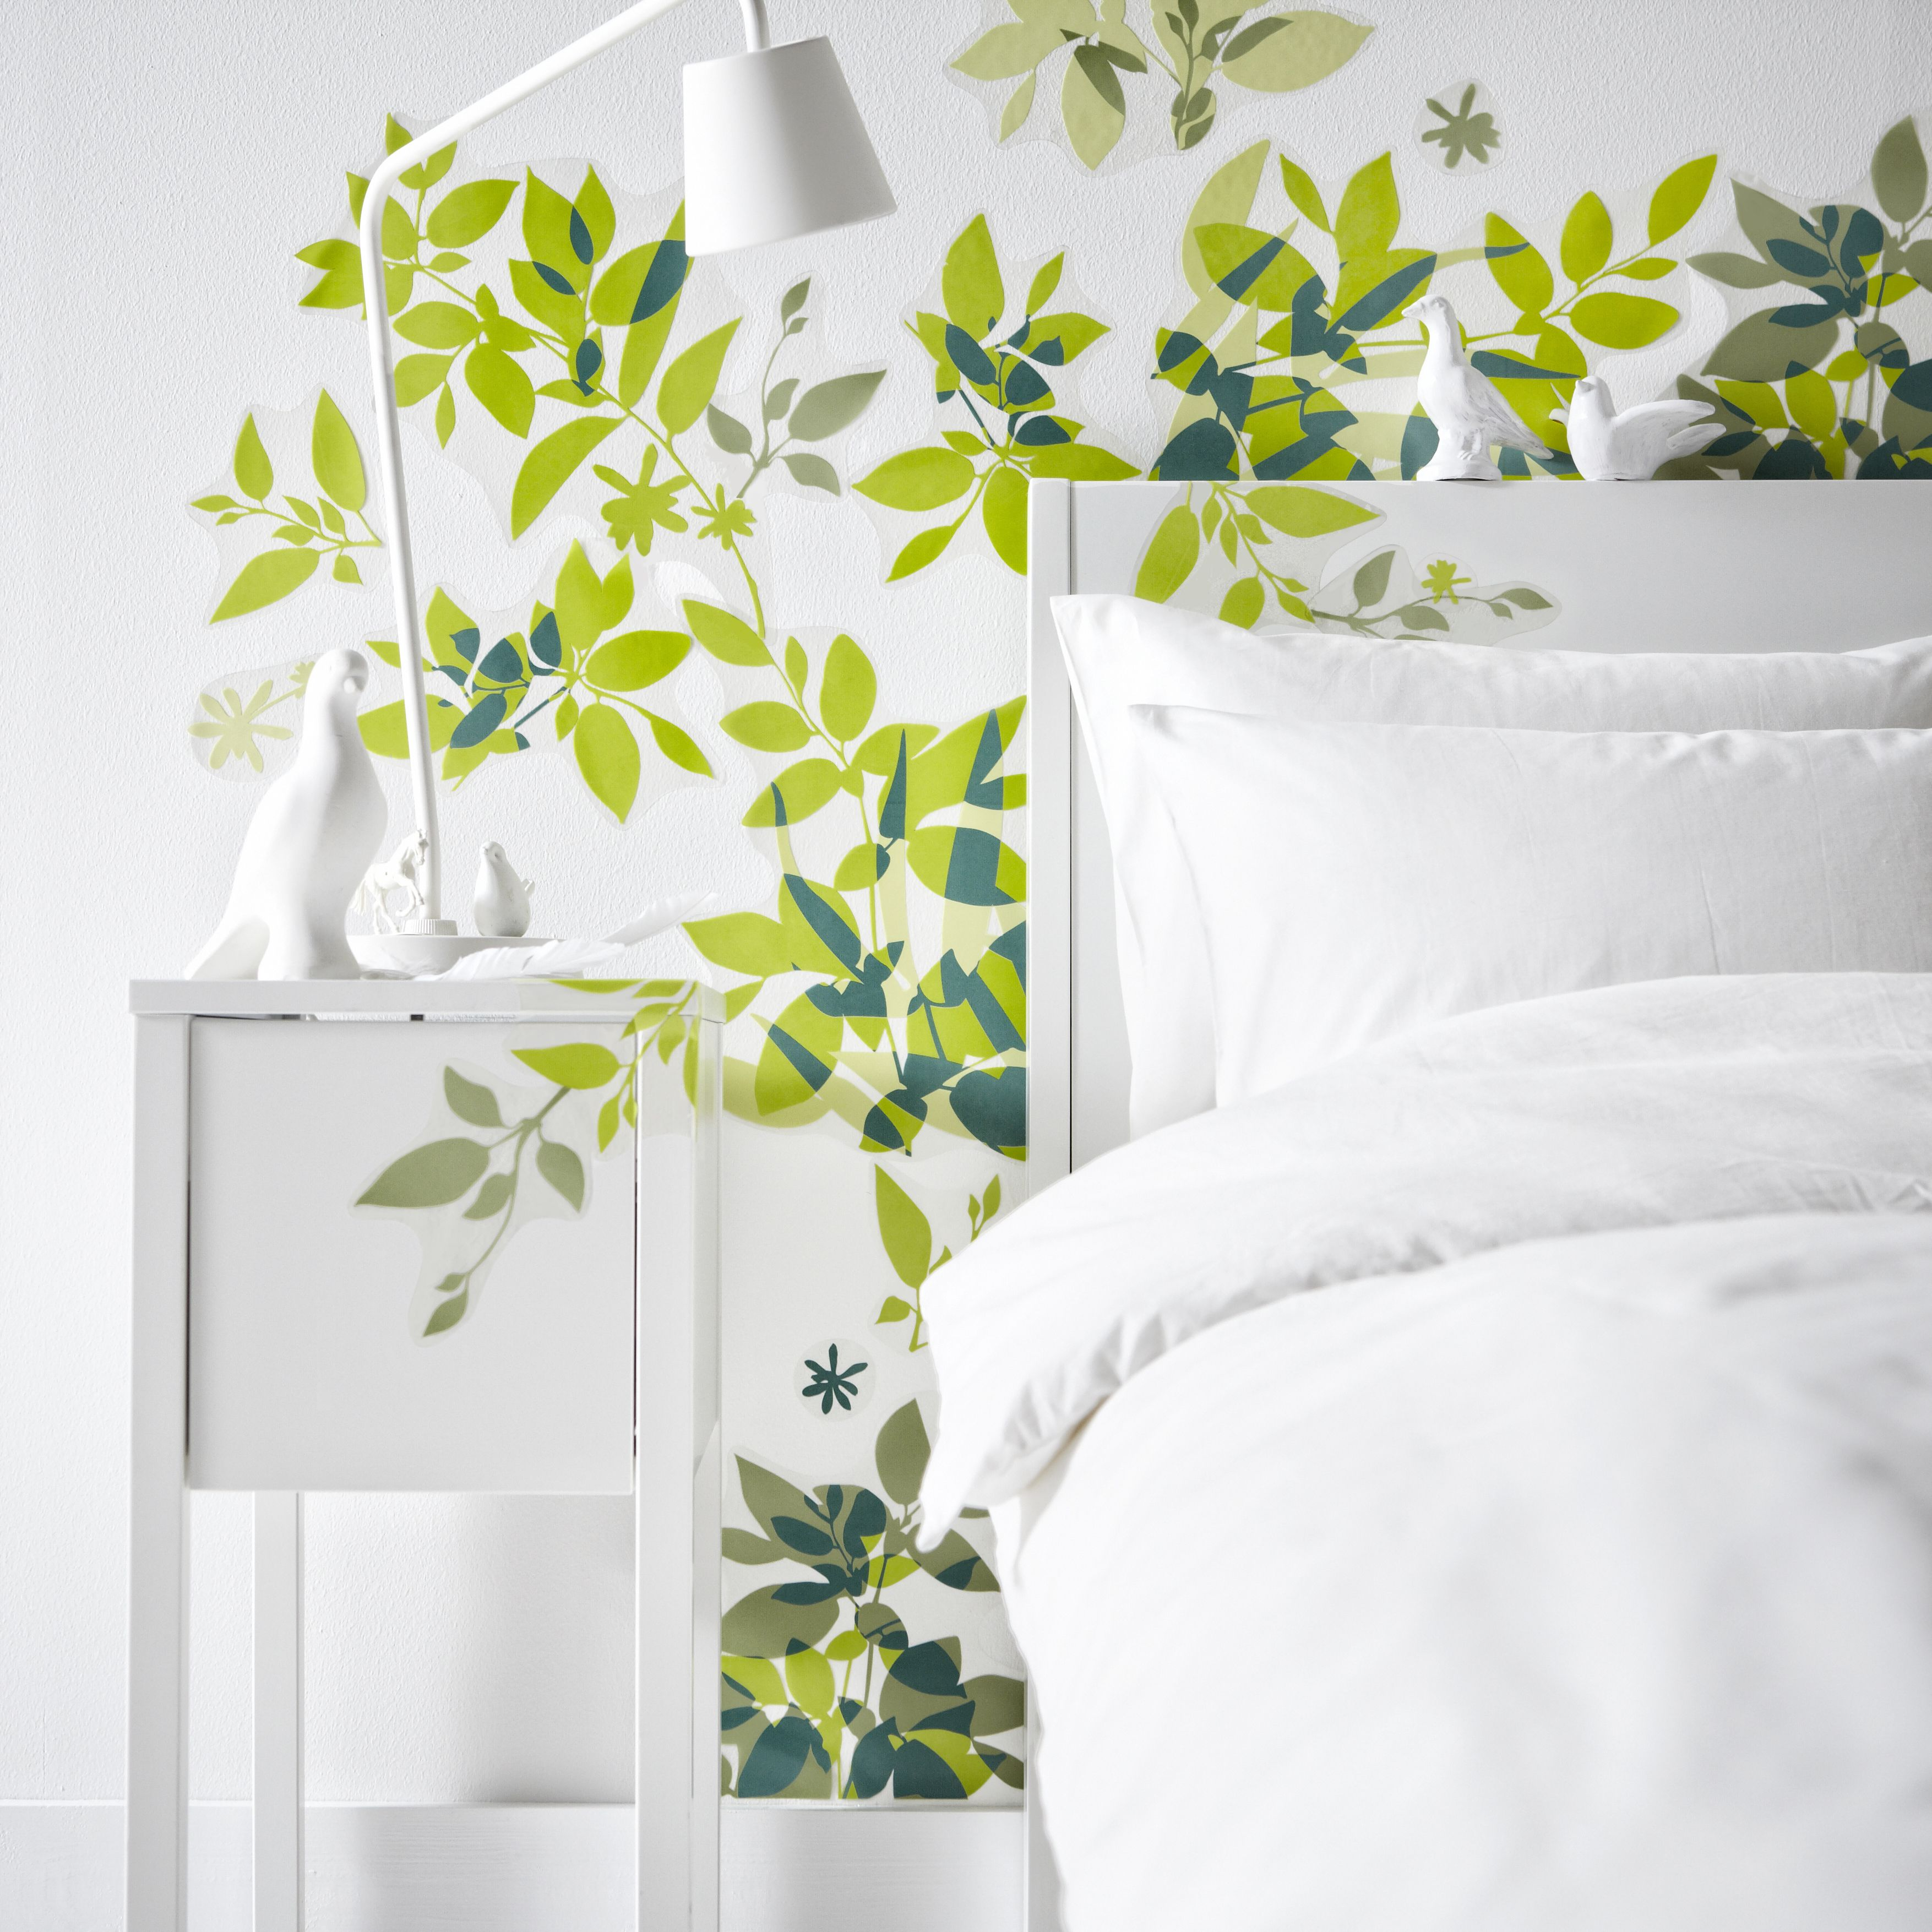 Master bedroom wall decor stickers  Add some graphic flavour and bring a little nomaintenance nature